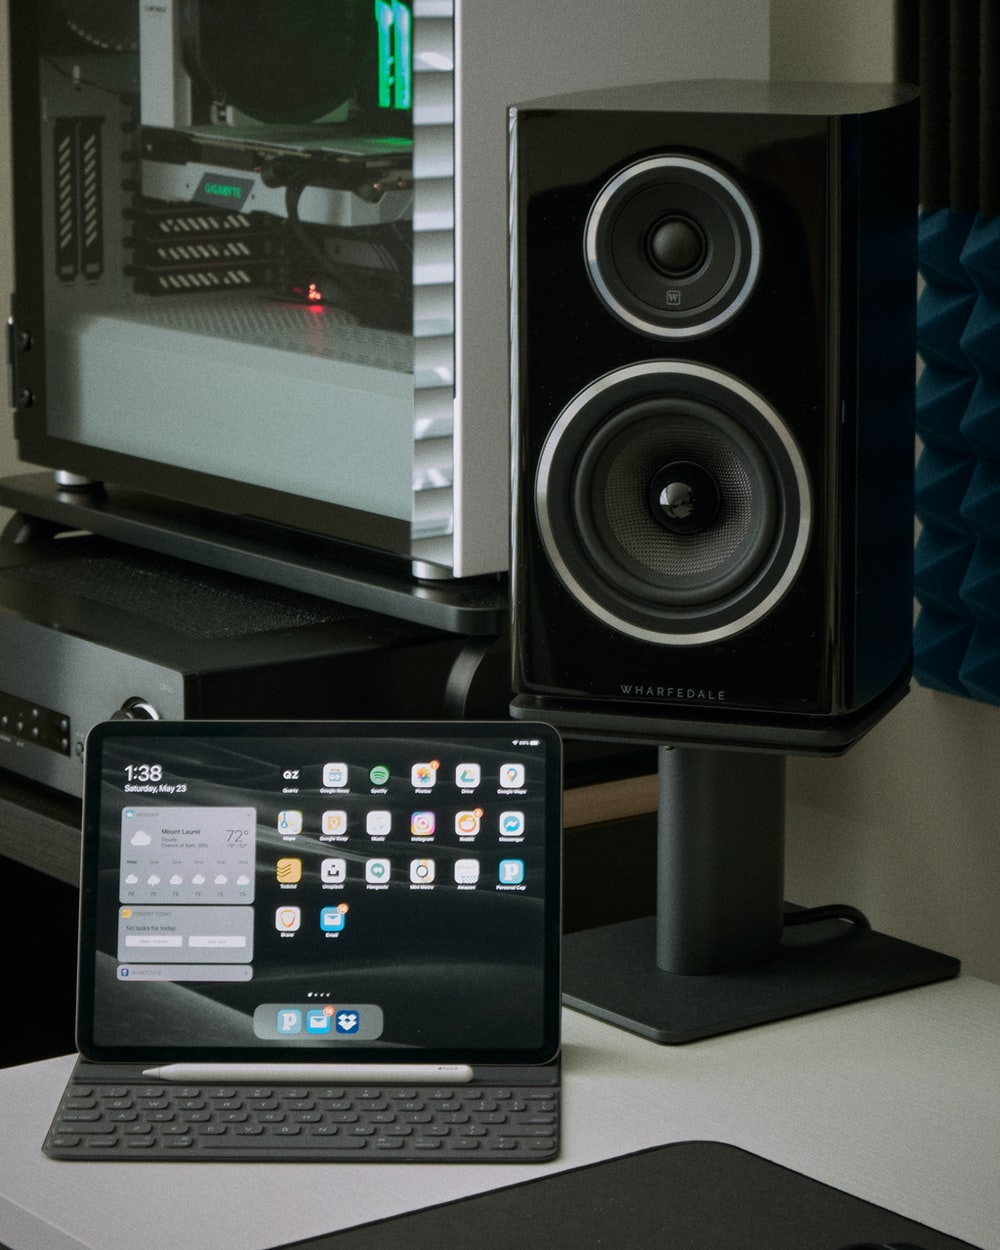 black and gray speaker beside black flat screen computer monitor